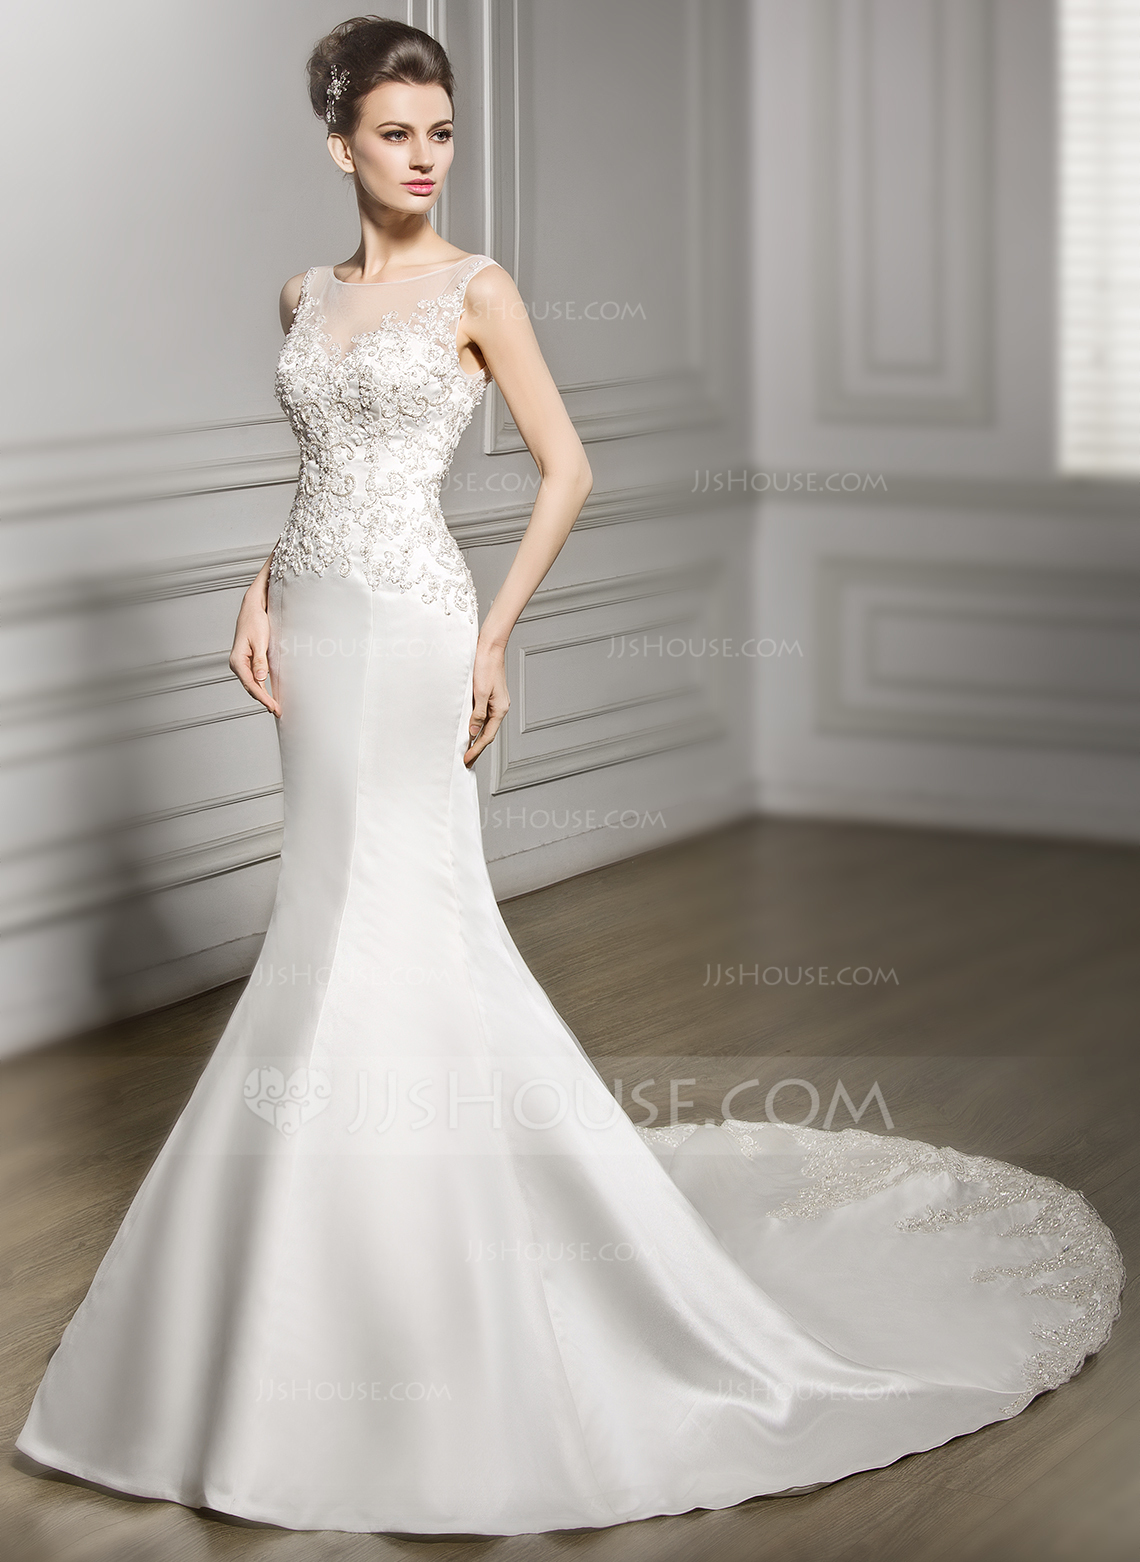 Trumpet Mermaid Scoop Neck Chapel Train Satin Lace Wedding Dress With Beading Sequins g jjshouse wedding dress Home Wedding Dresses Loading zoom